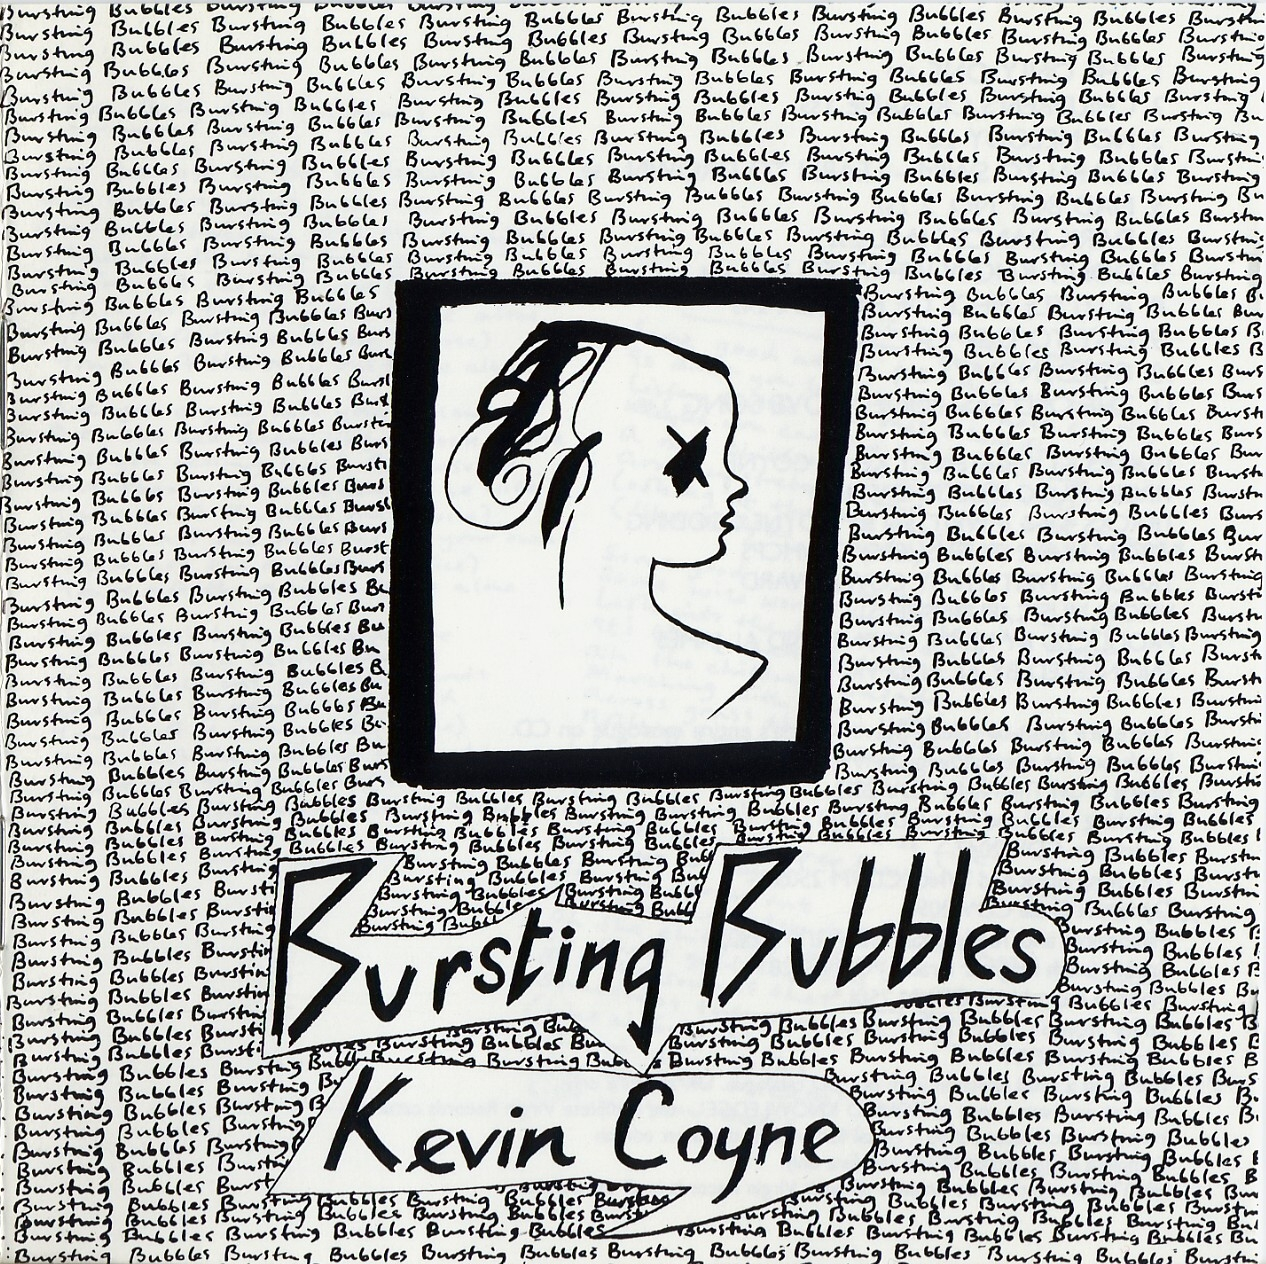 Kevin young virgin records